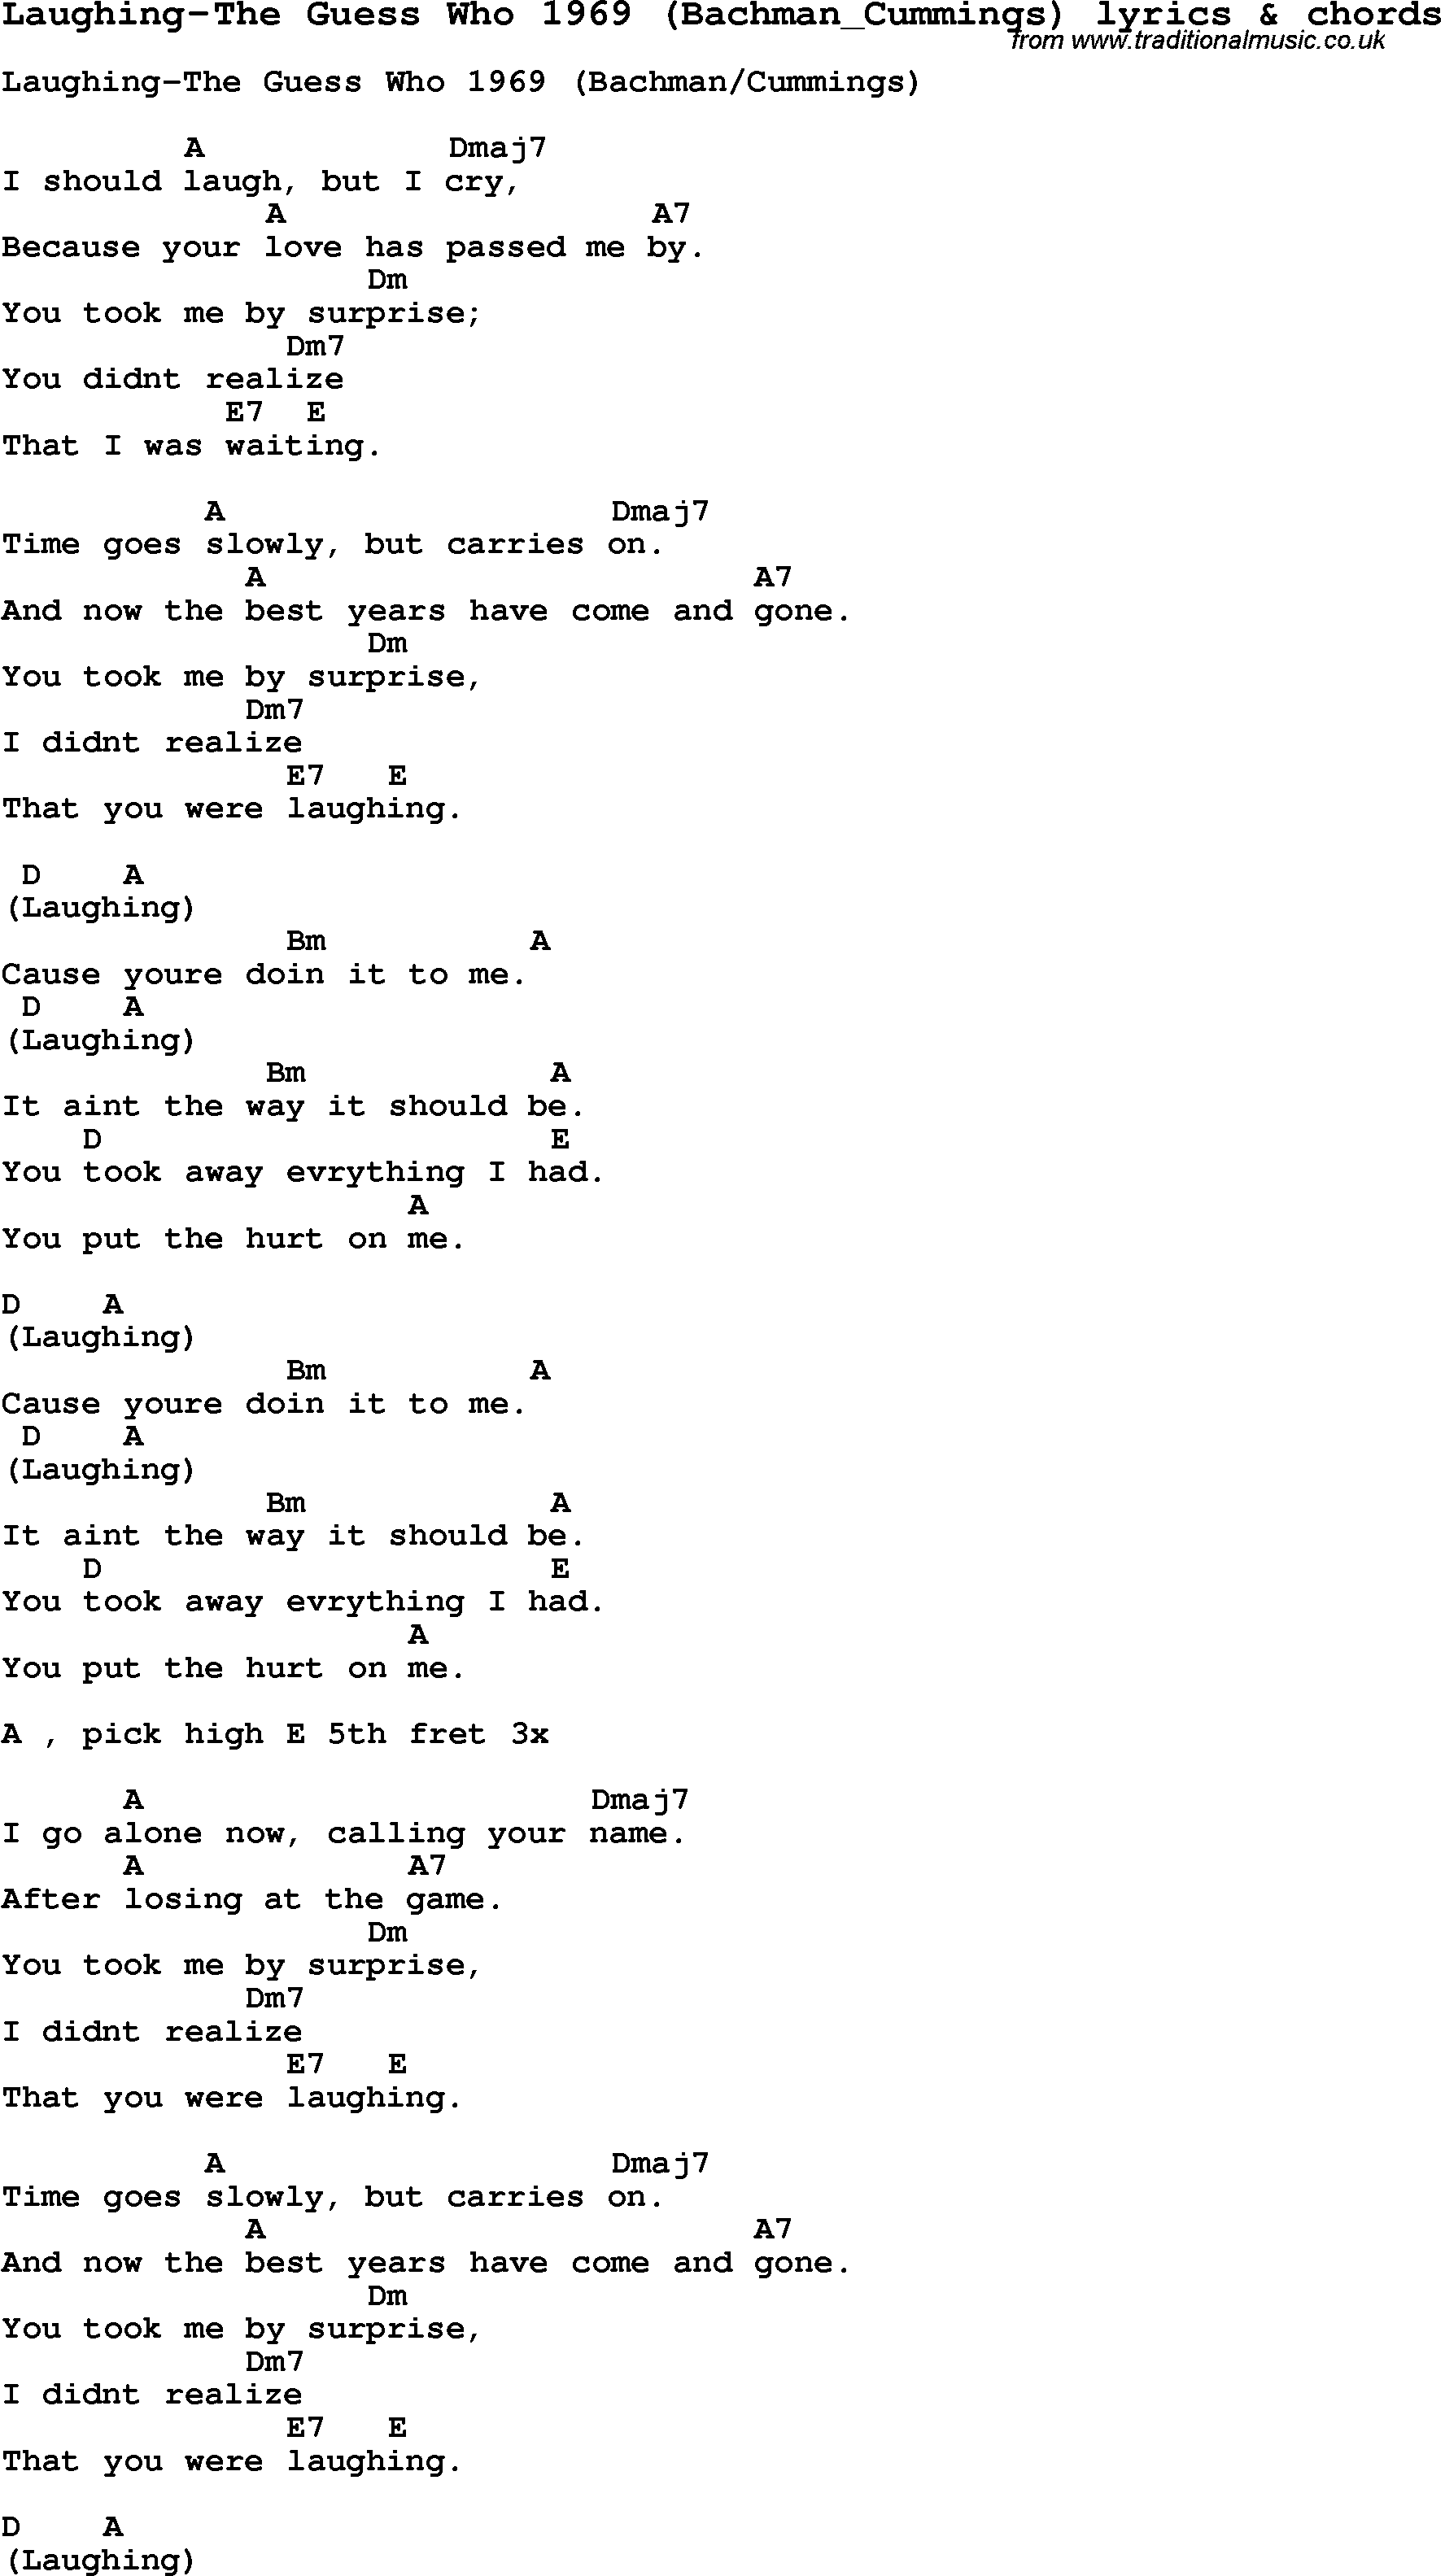 Love Song Lyrics For Laughing The Guess Who 1969 Bachmancummings